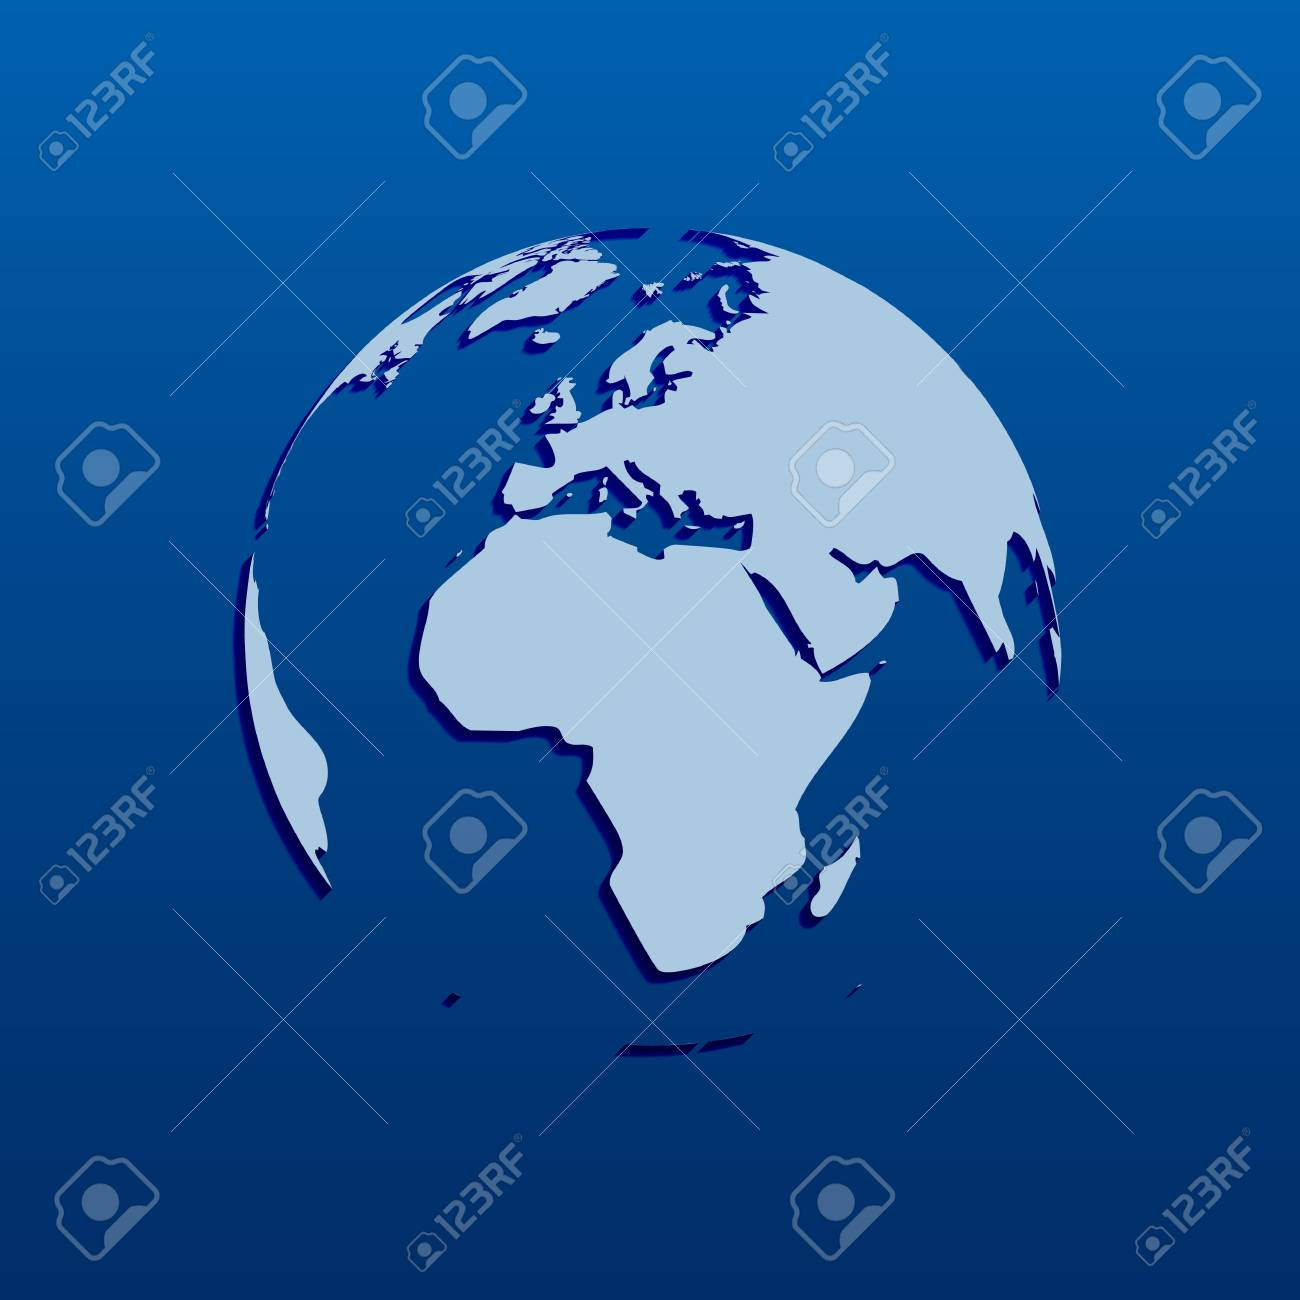 Blue Globe with map on dark background, illustration Stock Vector - 18907408